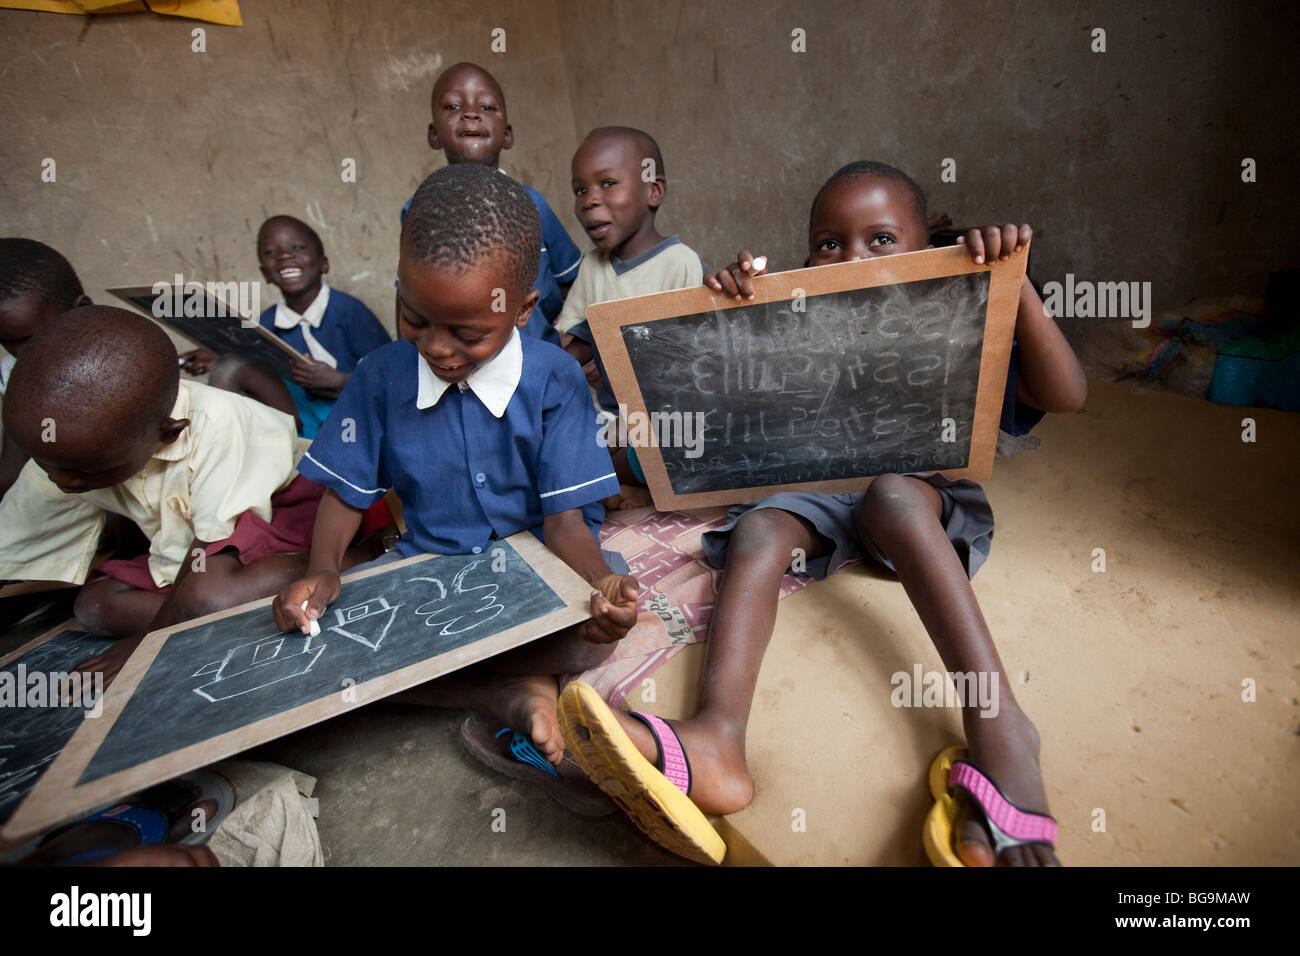 Young children draw on blackboards in an orphanage in Amuria, Uganda, East Africa. - Stock Image